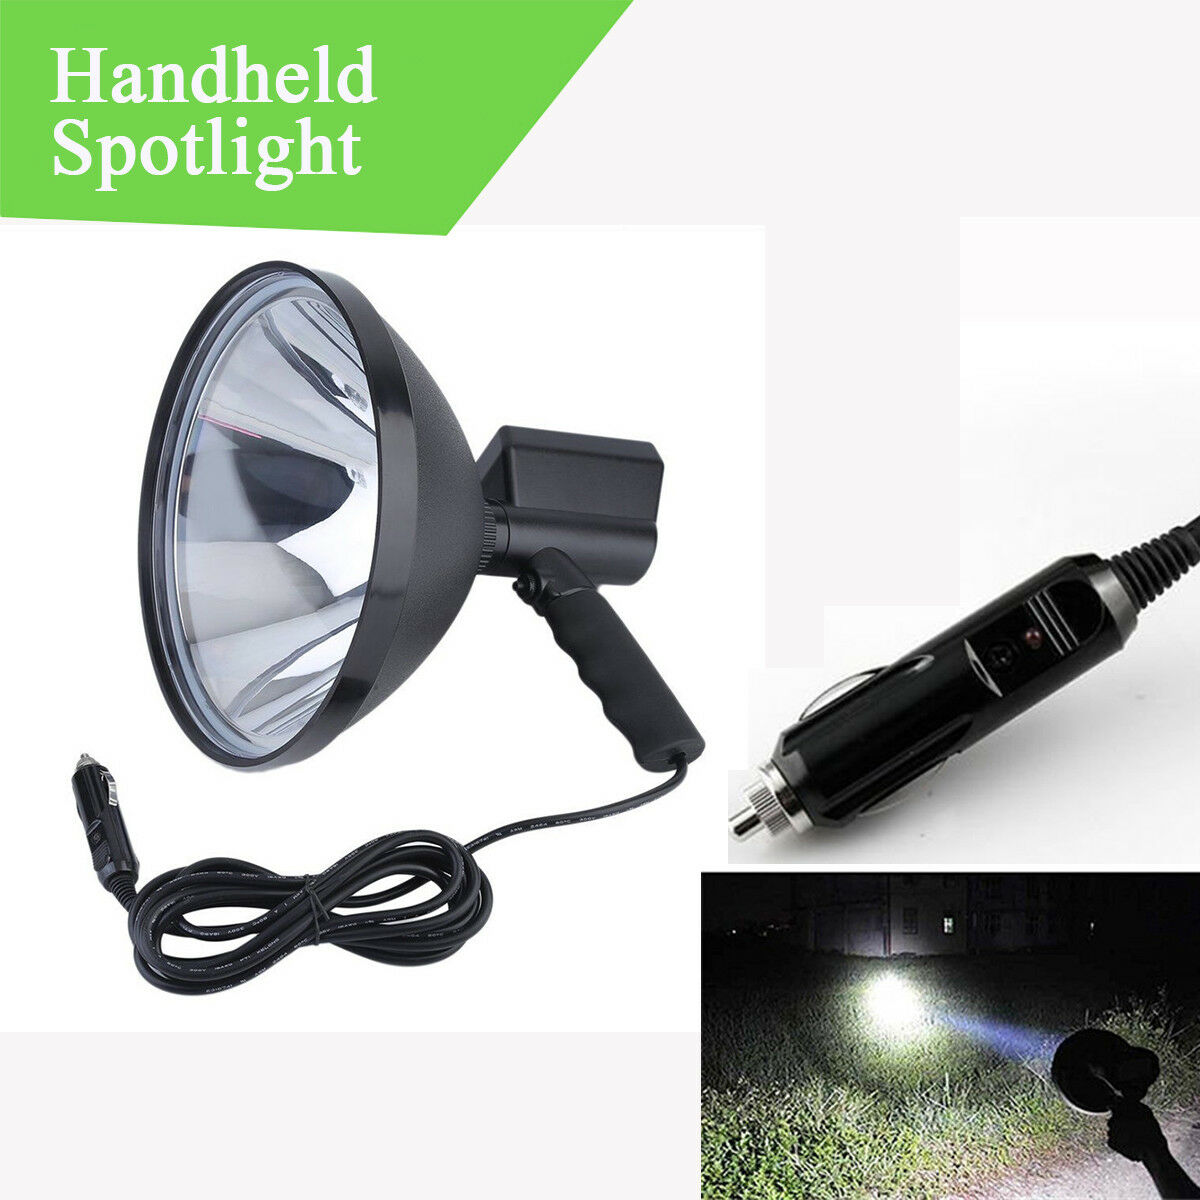 1x Xenon HID 9  1000W H3 6000K Handheld Spotlight Camping Hunting Fishing Light